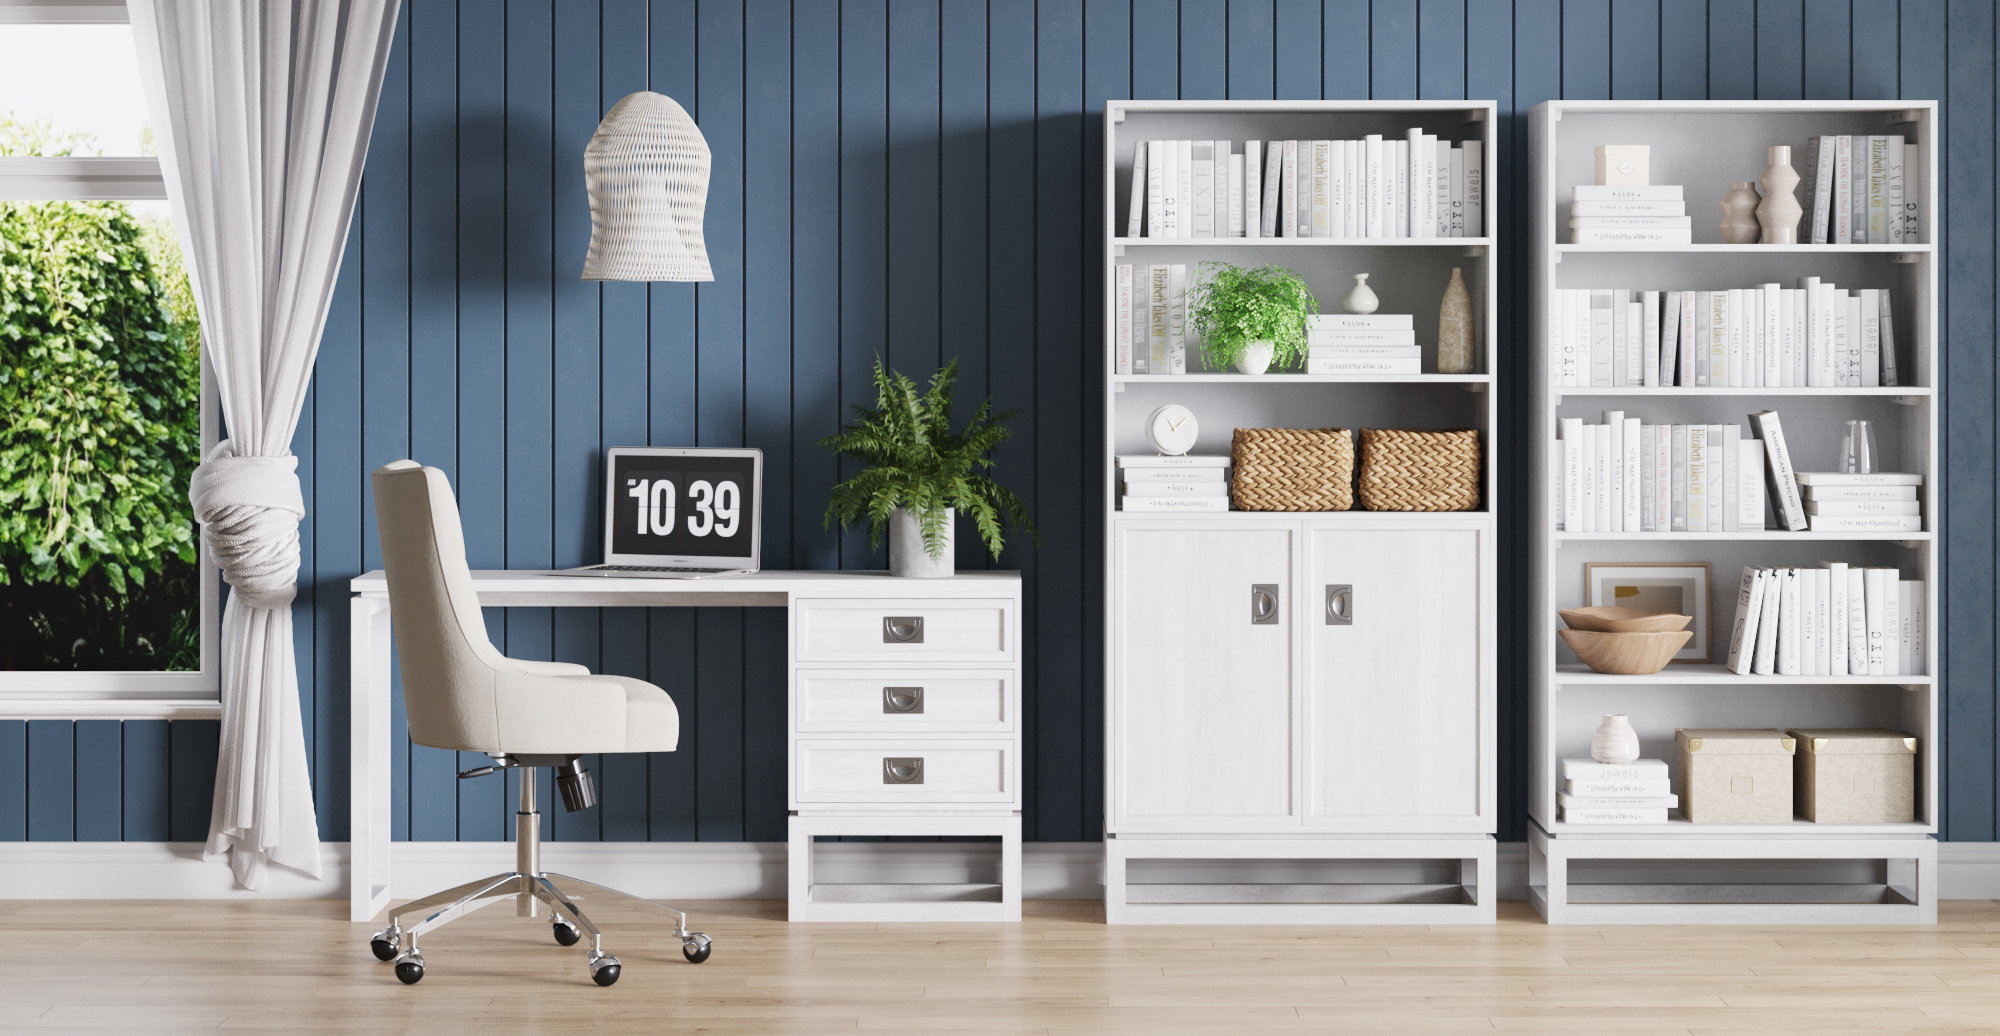 Brosa Monterey Hamptons Style Desk with Drawers in Hamptons Style Home Office